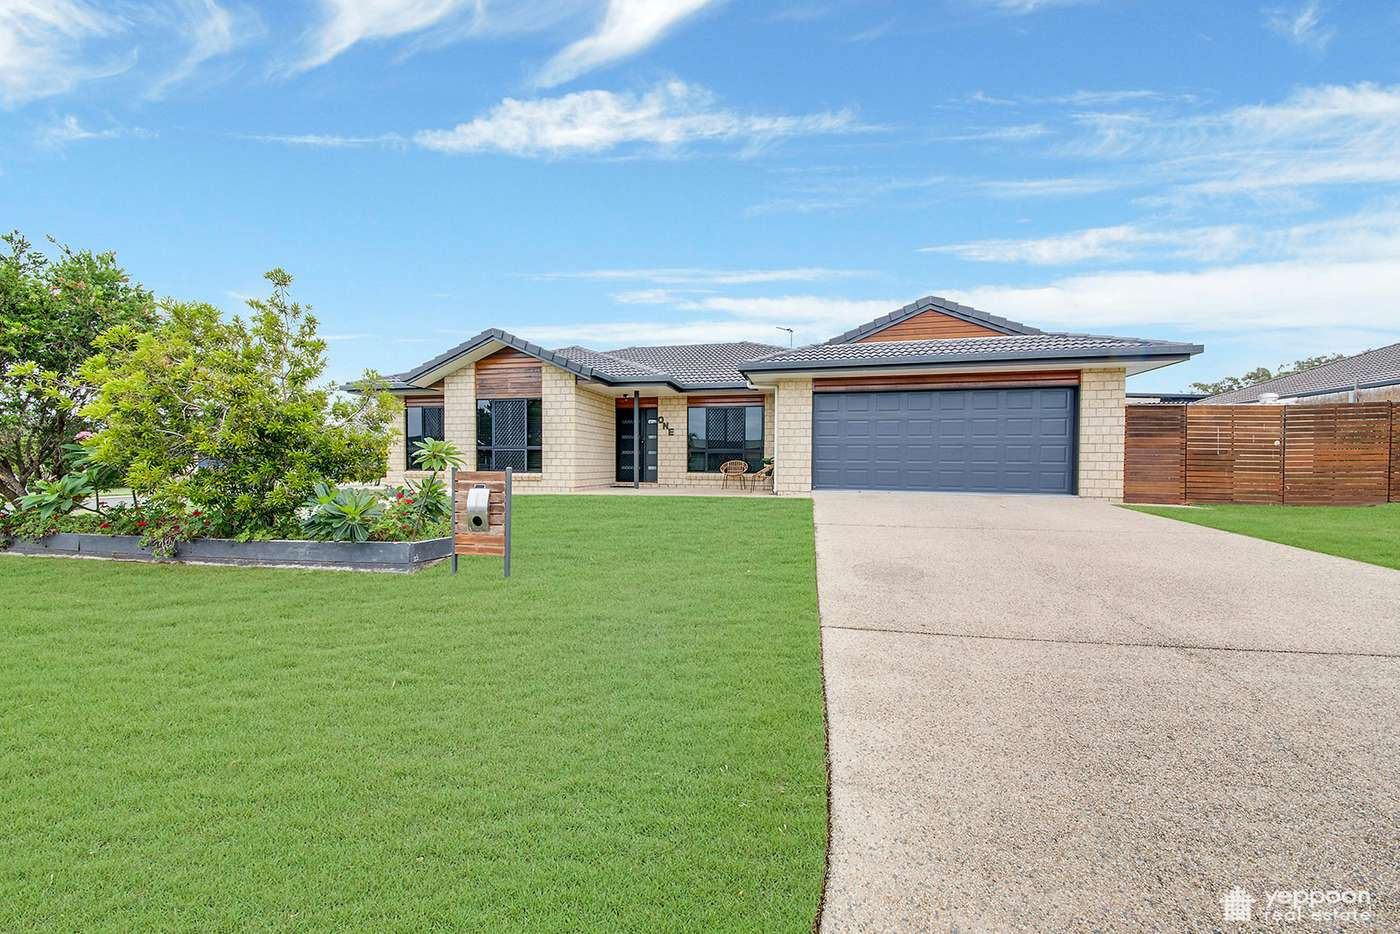 Main view of Homely house listing, 1 Bell Miner Avenue, Yeppoon QLD 4703